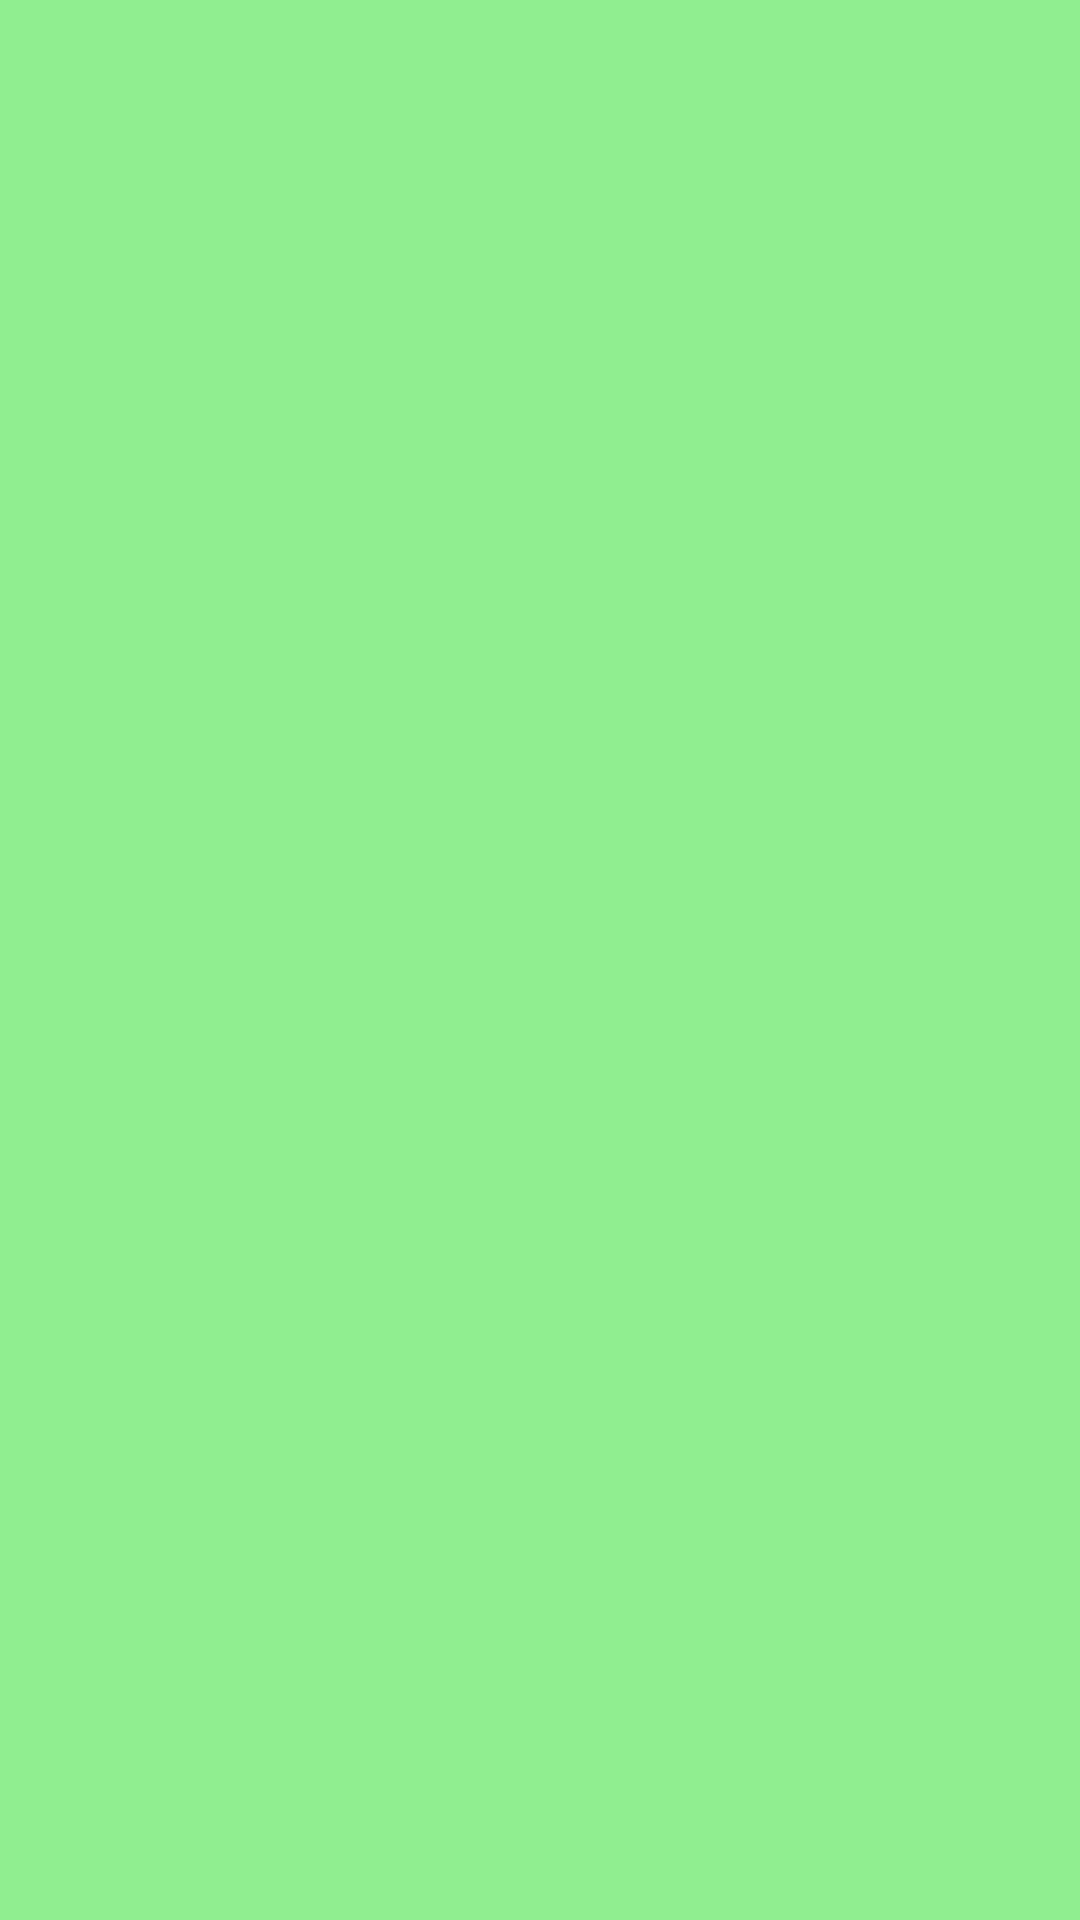 1080x1920 Light Green Solid Color Background